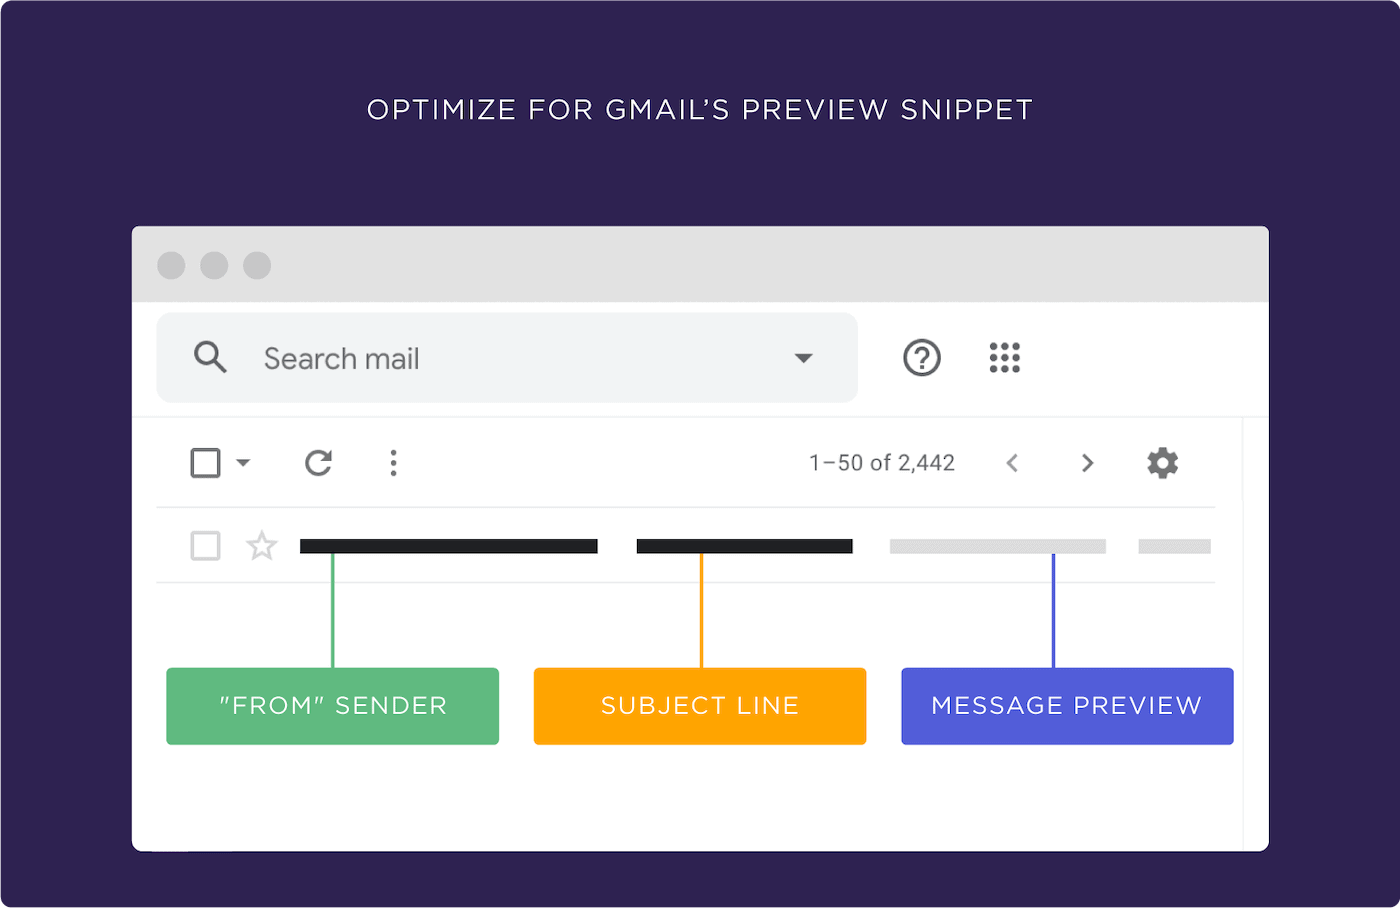 Optimize for Gmail's preview snippet